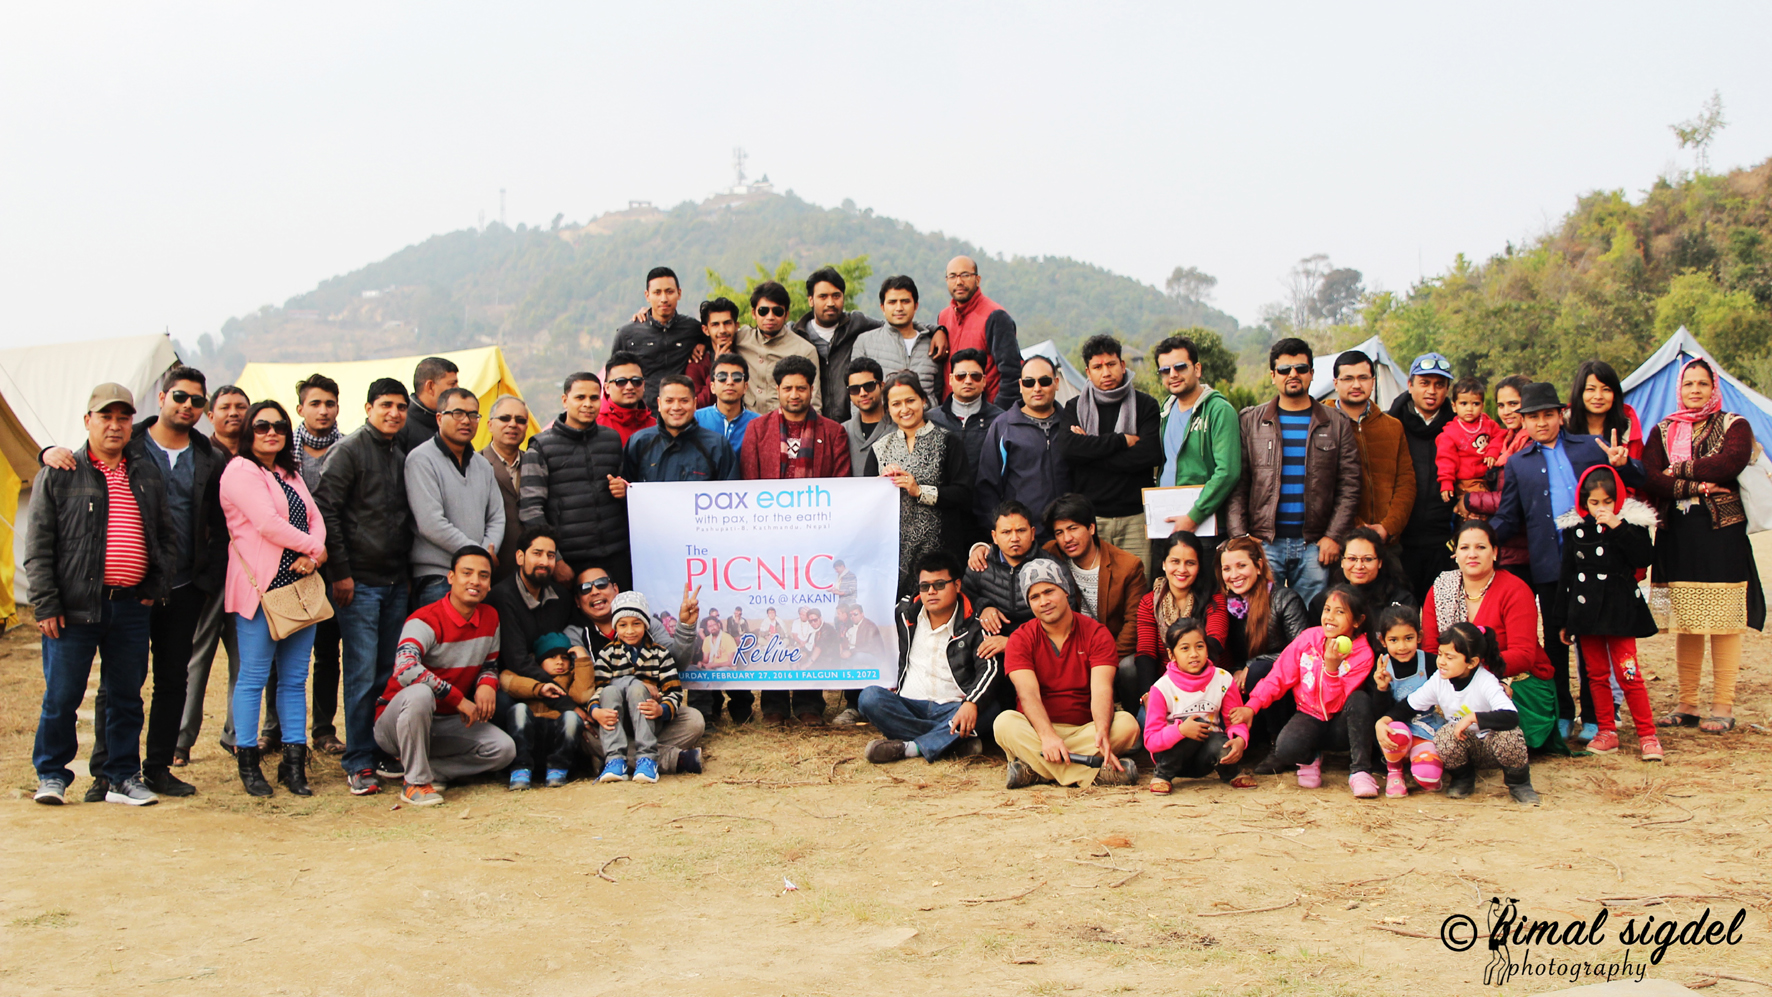 1_Group photo of picnic